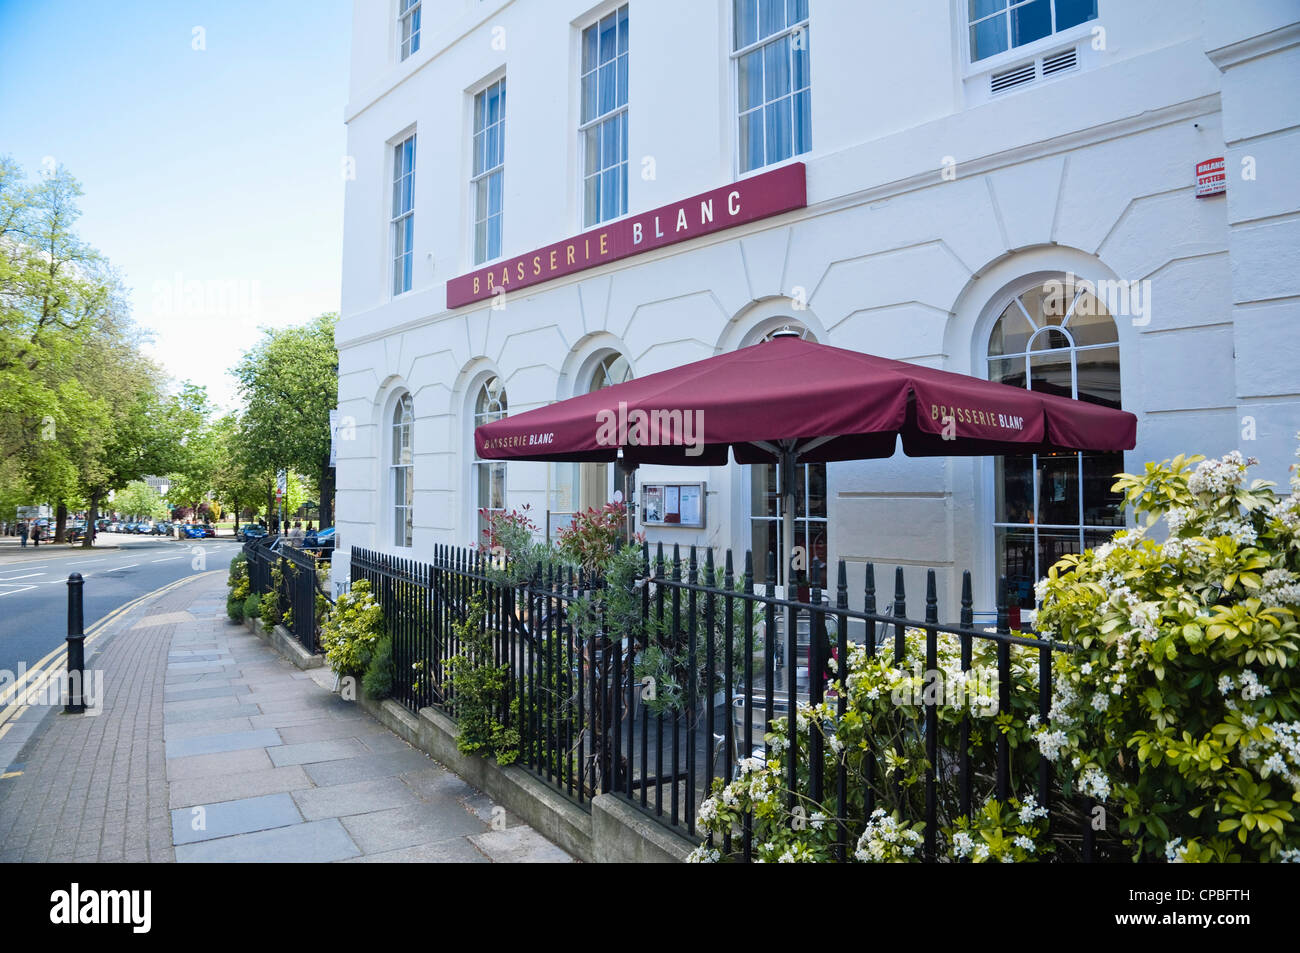 Brasserie Blanc - restaurant situated within the Queens Hotel,  Montpellier, Cheltenham, Gloucestershire, UK. - Stock Image